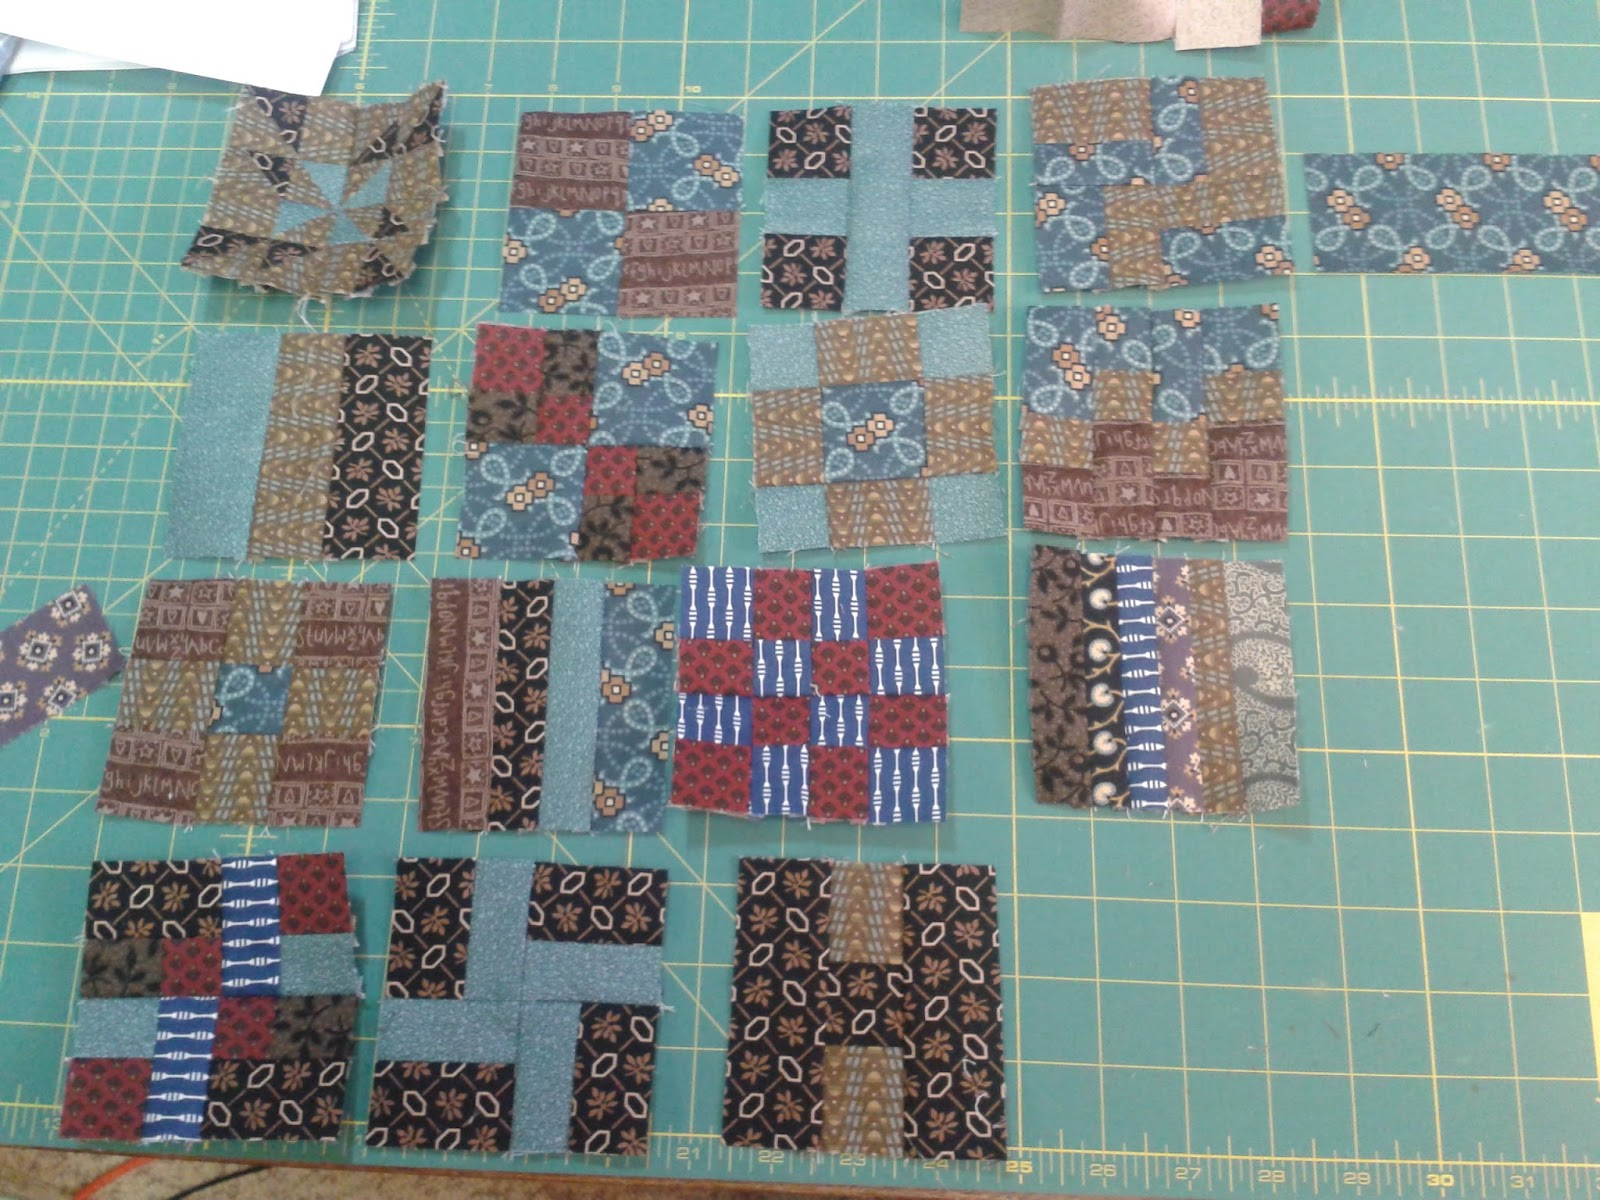 Patchwork Sanity-a woman s piece of mind: 365 quilt